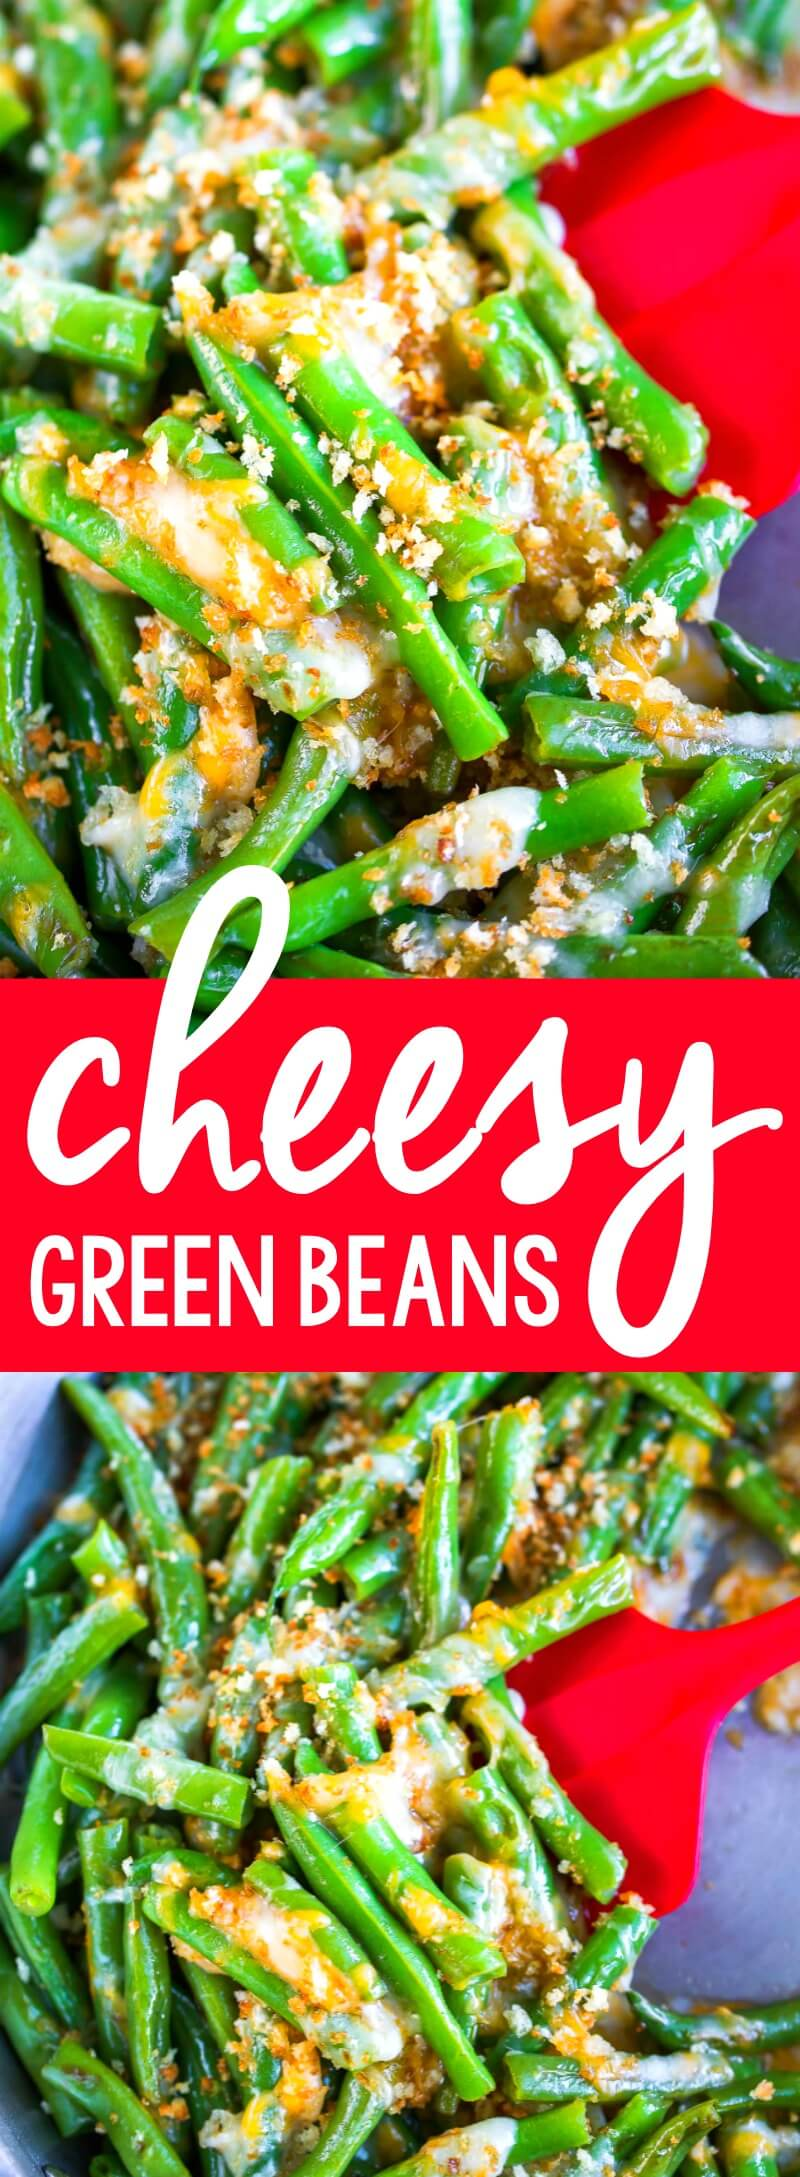 These cheesy green beans are a quick, easy, and totally delicious side dish! Whip them up to pair with your favorite fast and flavorful main course and say hello to a speedy weeknight dinner! #greenbeans #veggies #vegetarian #cheese #cheesy #garlic #sidedish #quick #easyrecipes